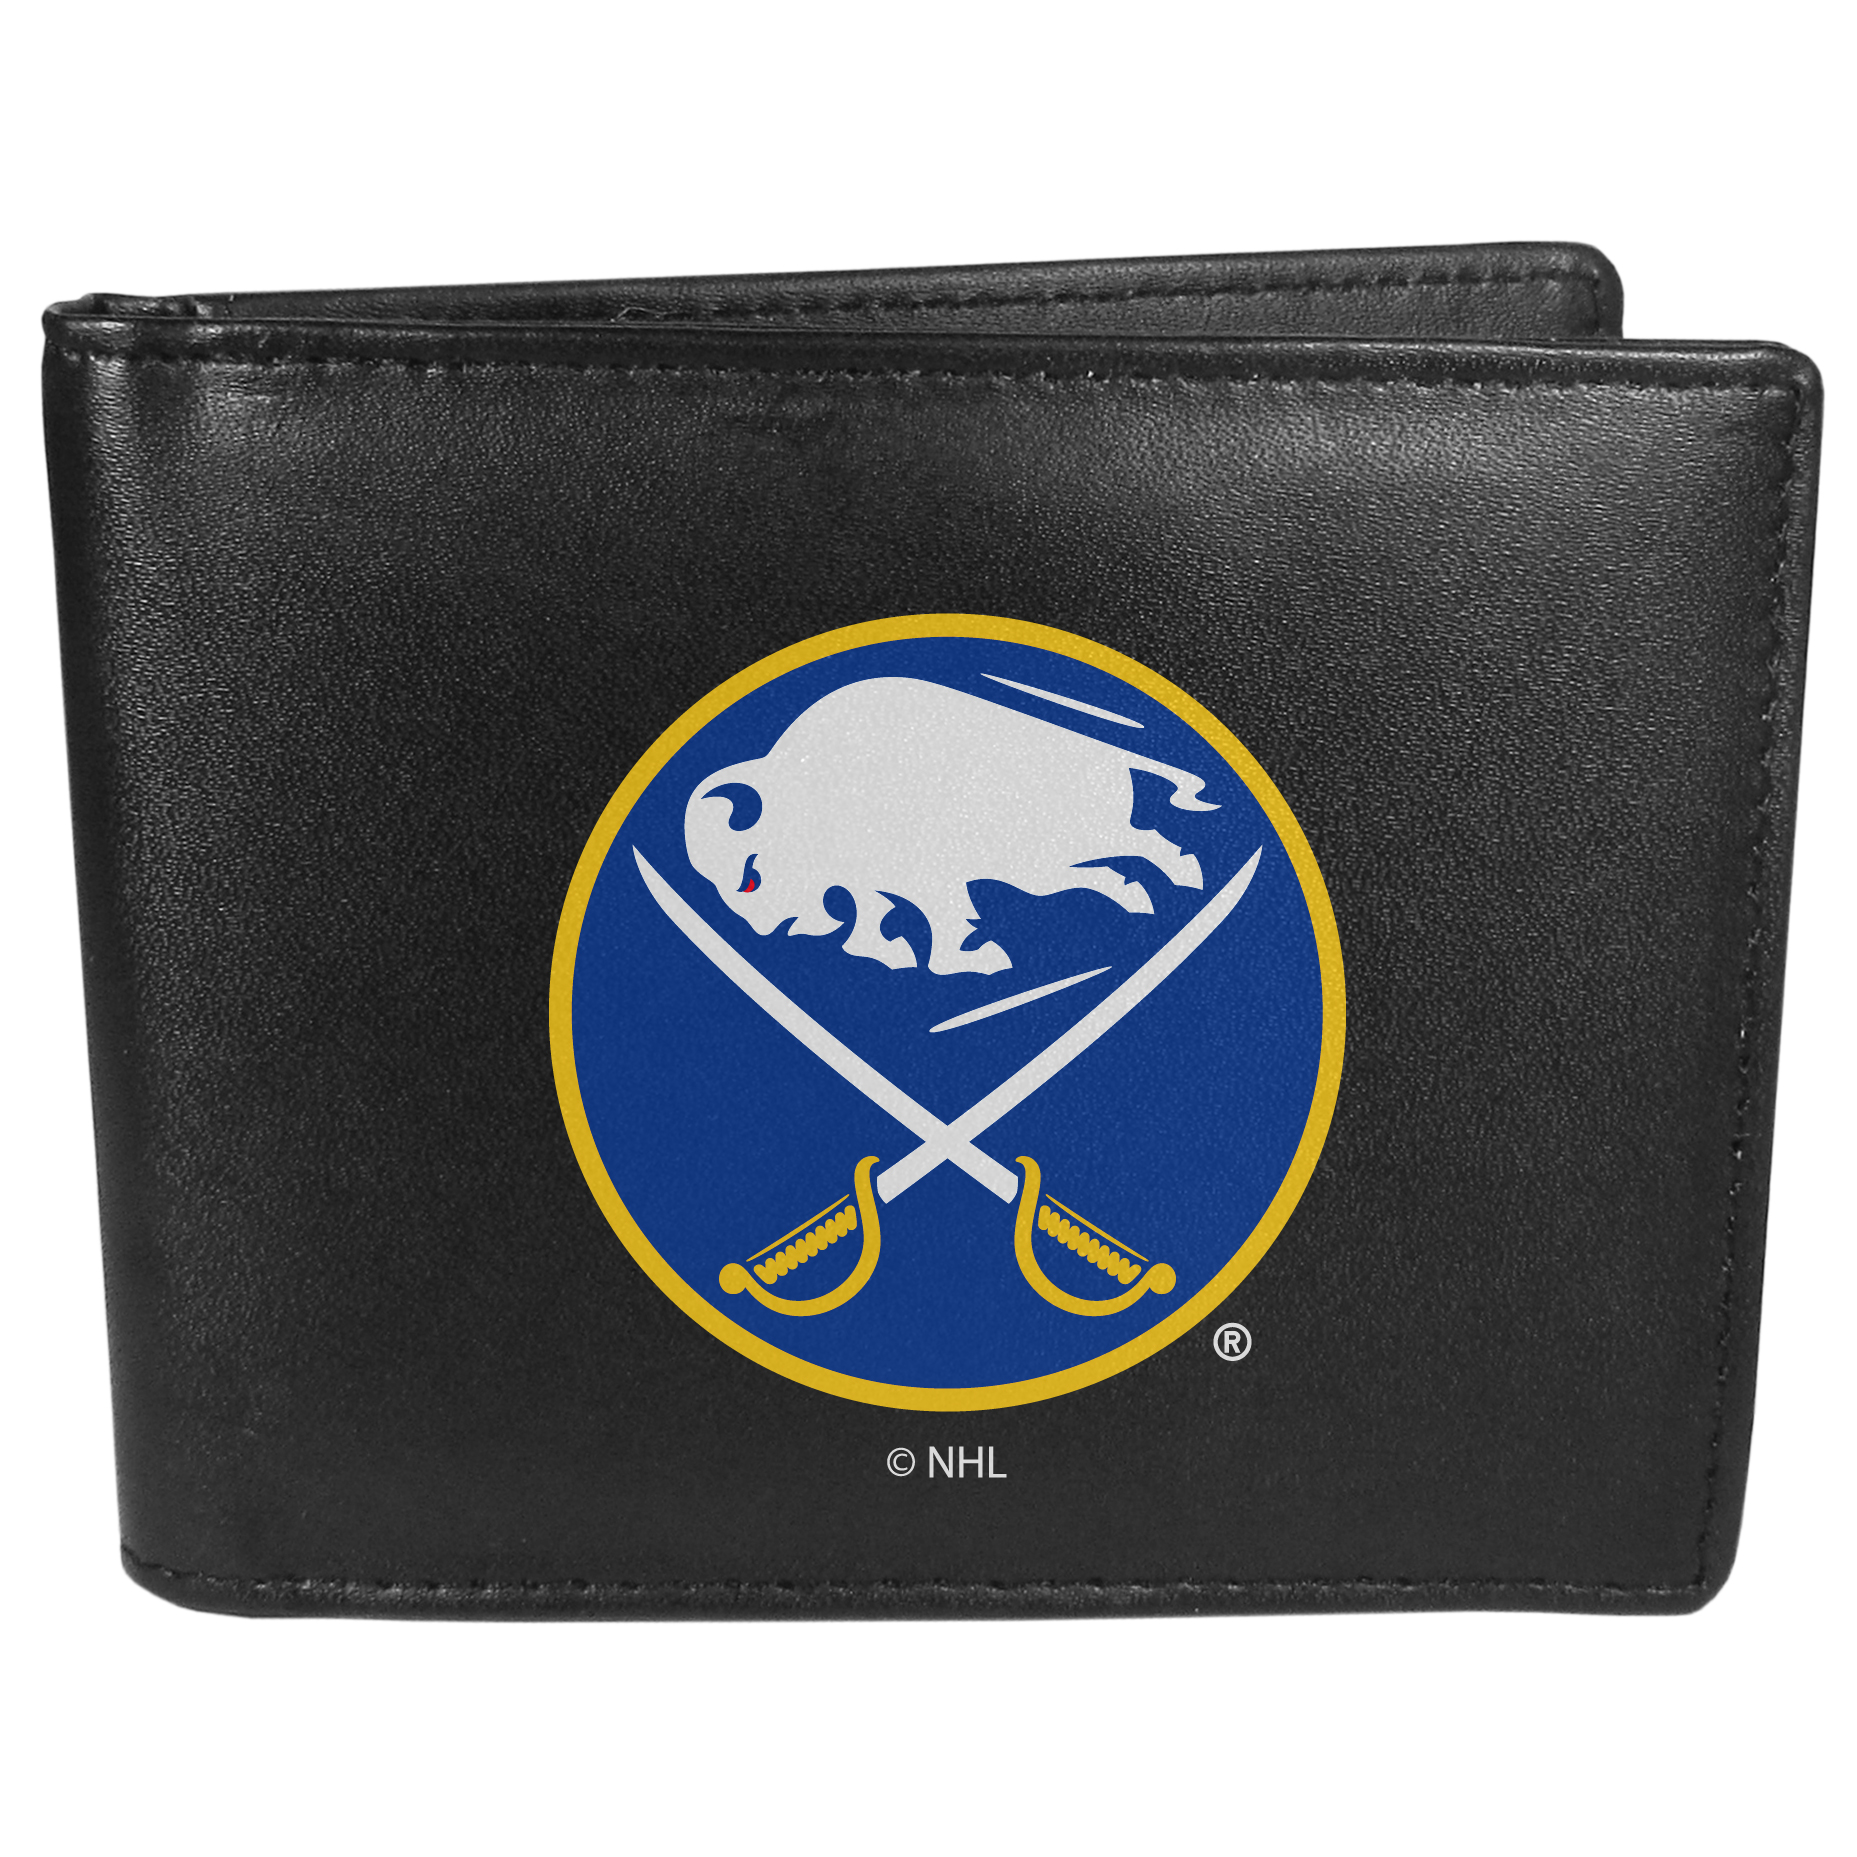 Buffalo Sabres Bi-fold Wallet Large Logo - Sports fans do not have to sacrifice style with this classic bi-fold wallet that sports the Buffalo Sabres?extra large logo. This men's fashion accessory has a leather grain look and expert craftmanship for a quality wallet at a great price. The wallet features inner credit card slots, windowed ID slot and a large billfold pocket. The front of the wallet features a printed team logo.